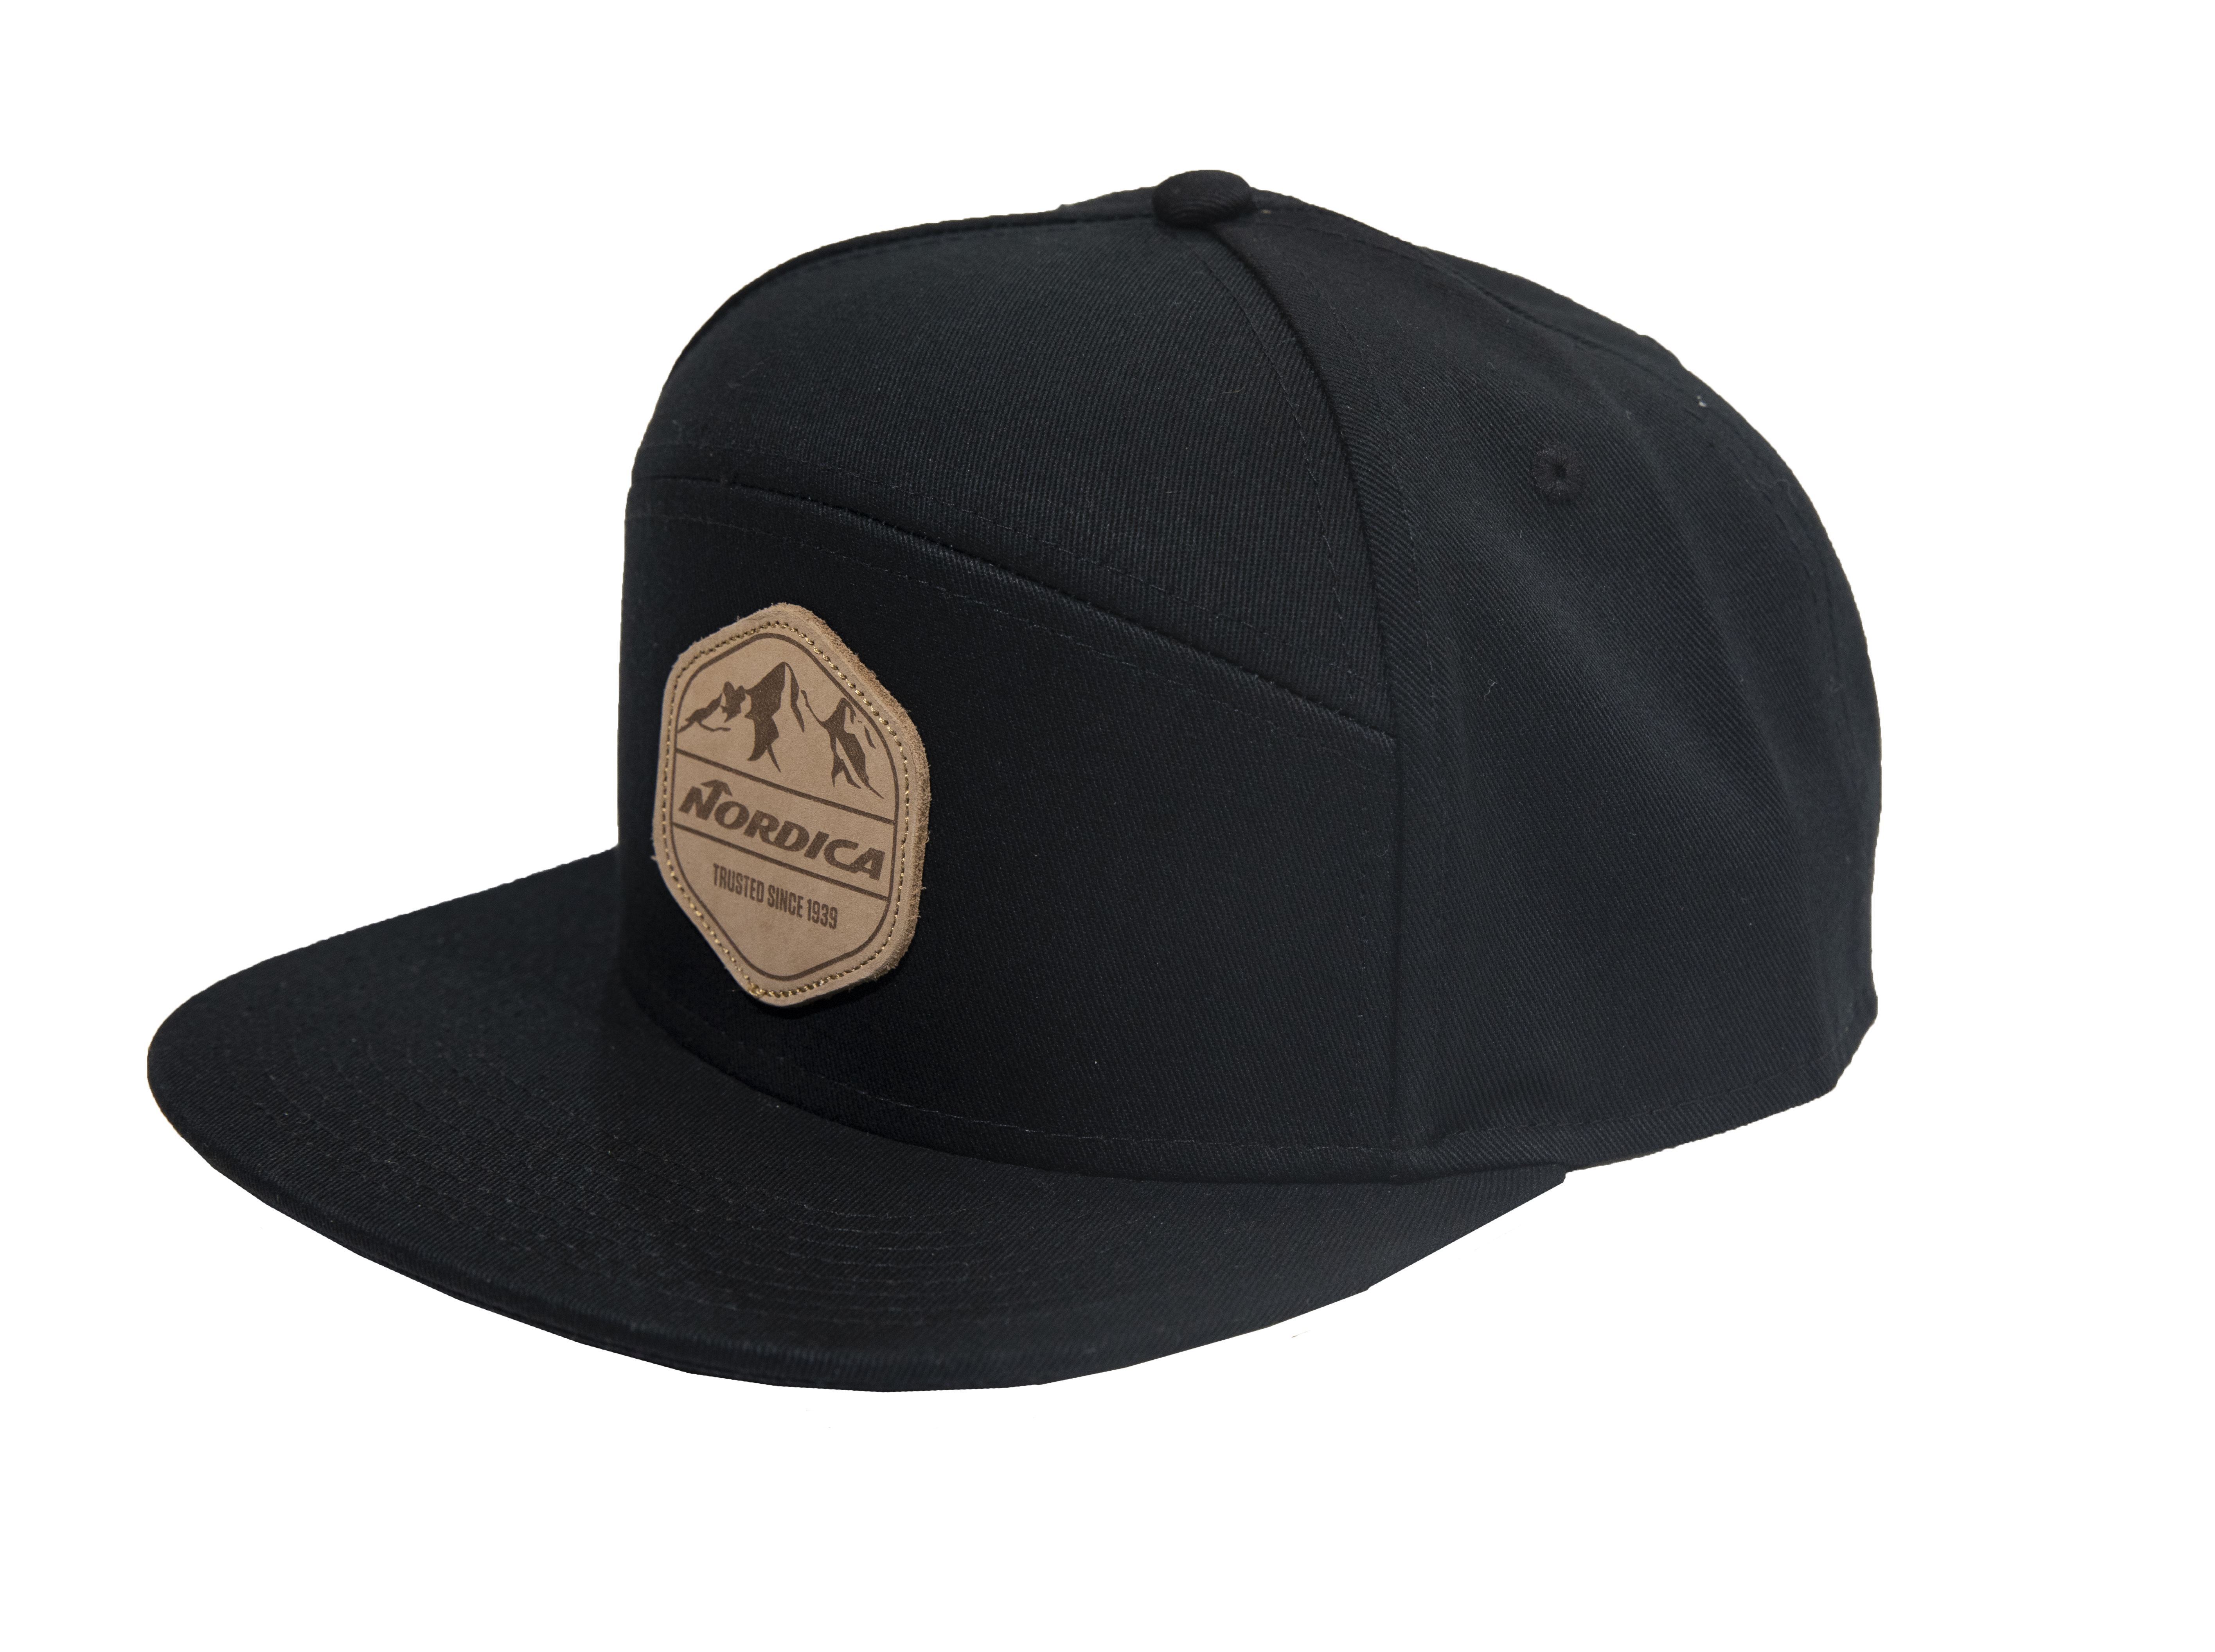 NORDICA LEATHER PATCH HAT